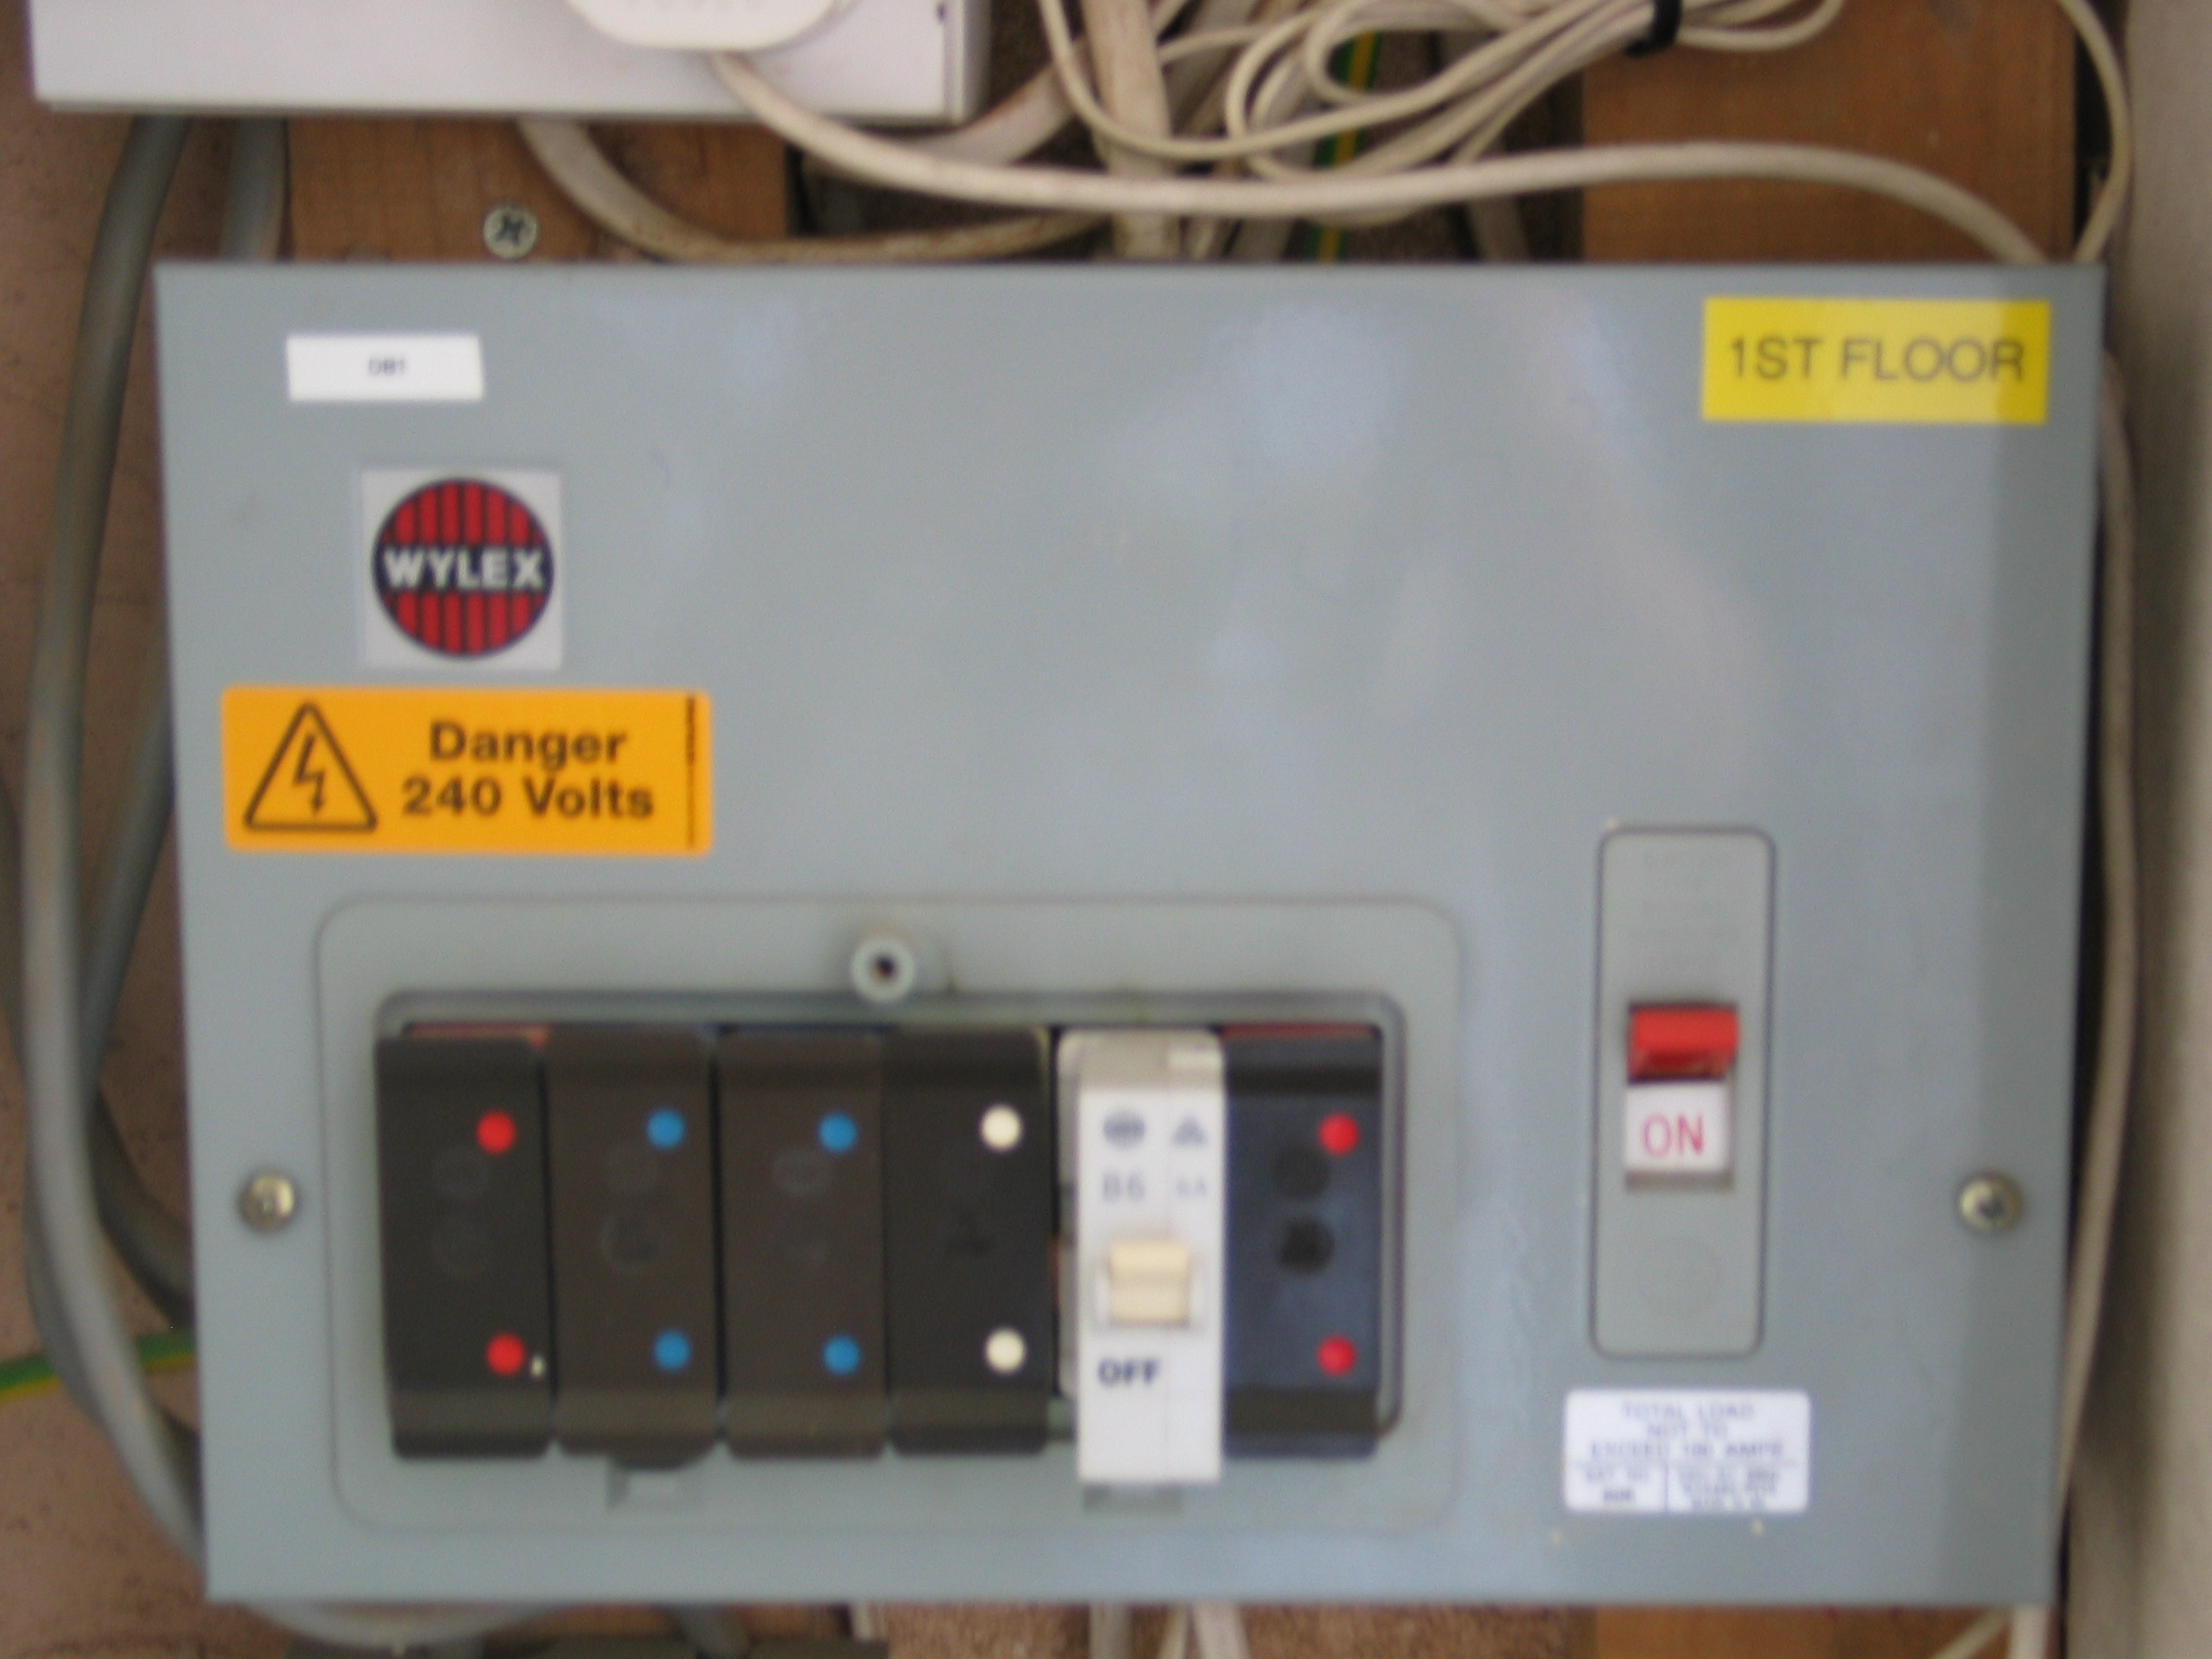 rcbo wiring diagram trane split system fuse board upgrades and rcd protection north london